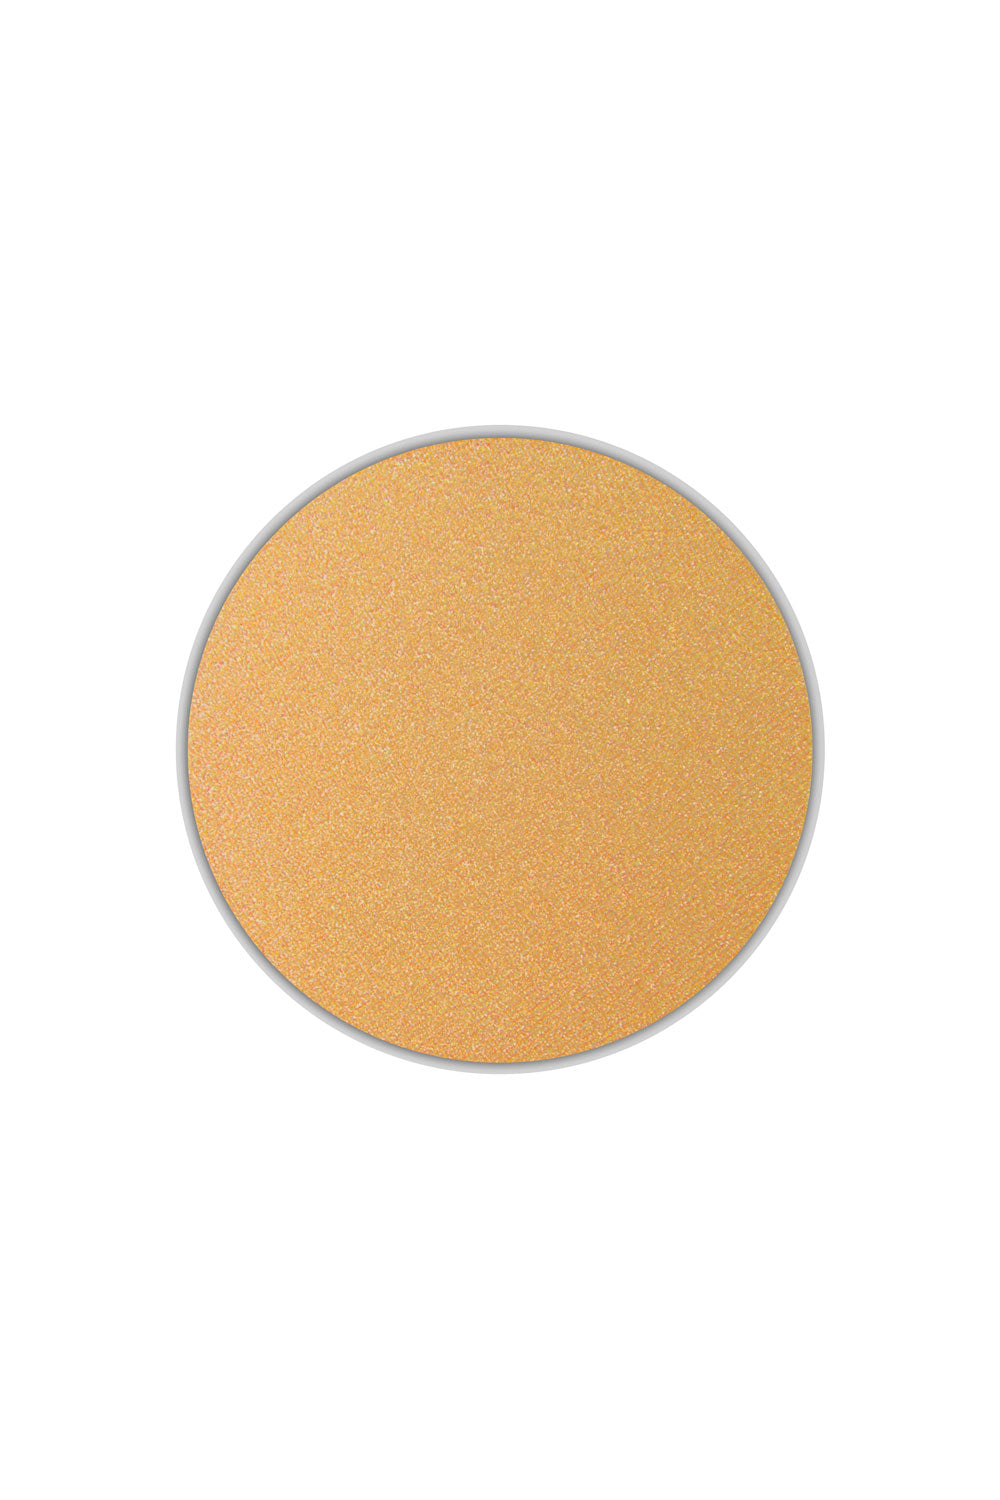 Shiny Gold - Type 3 Eyeshadow Pan